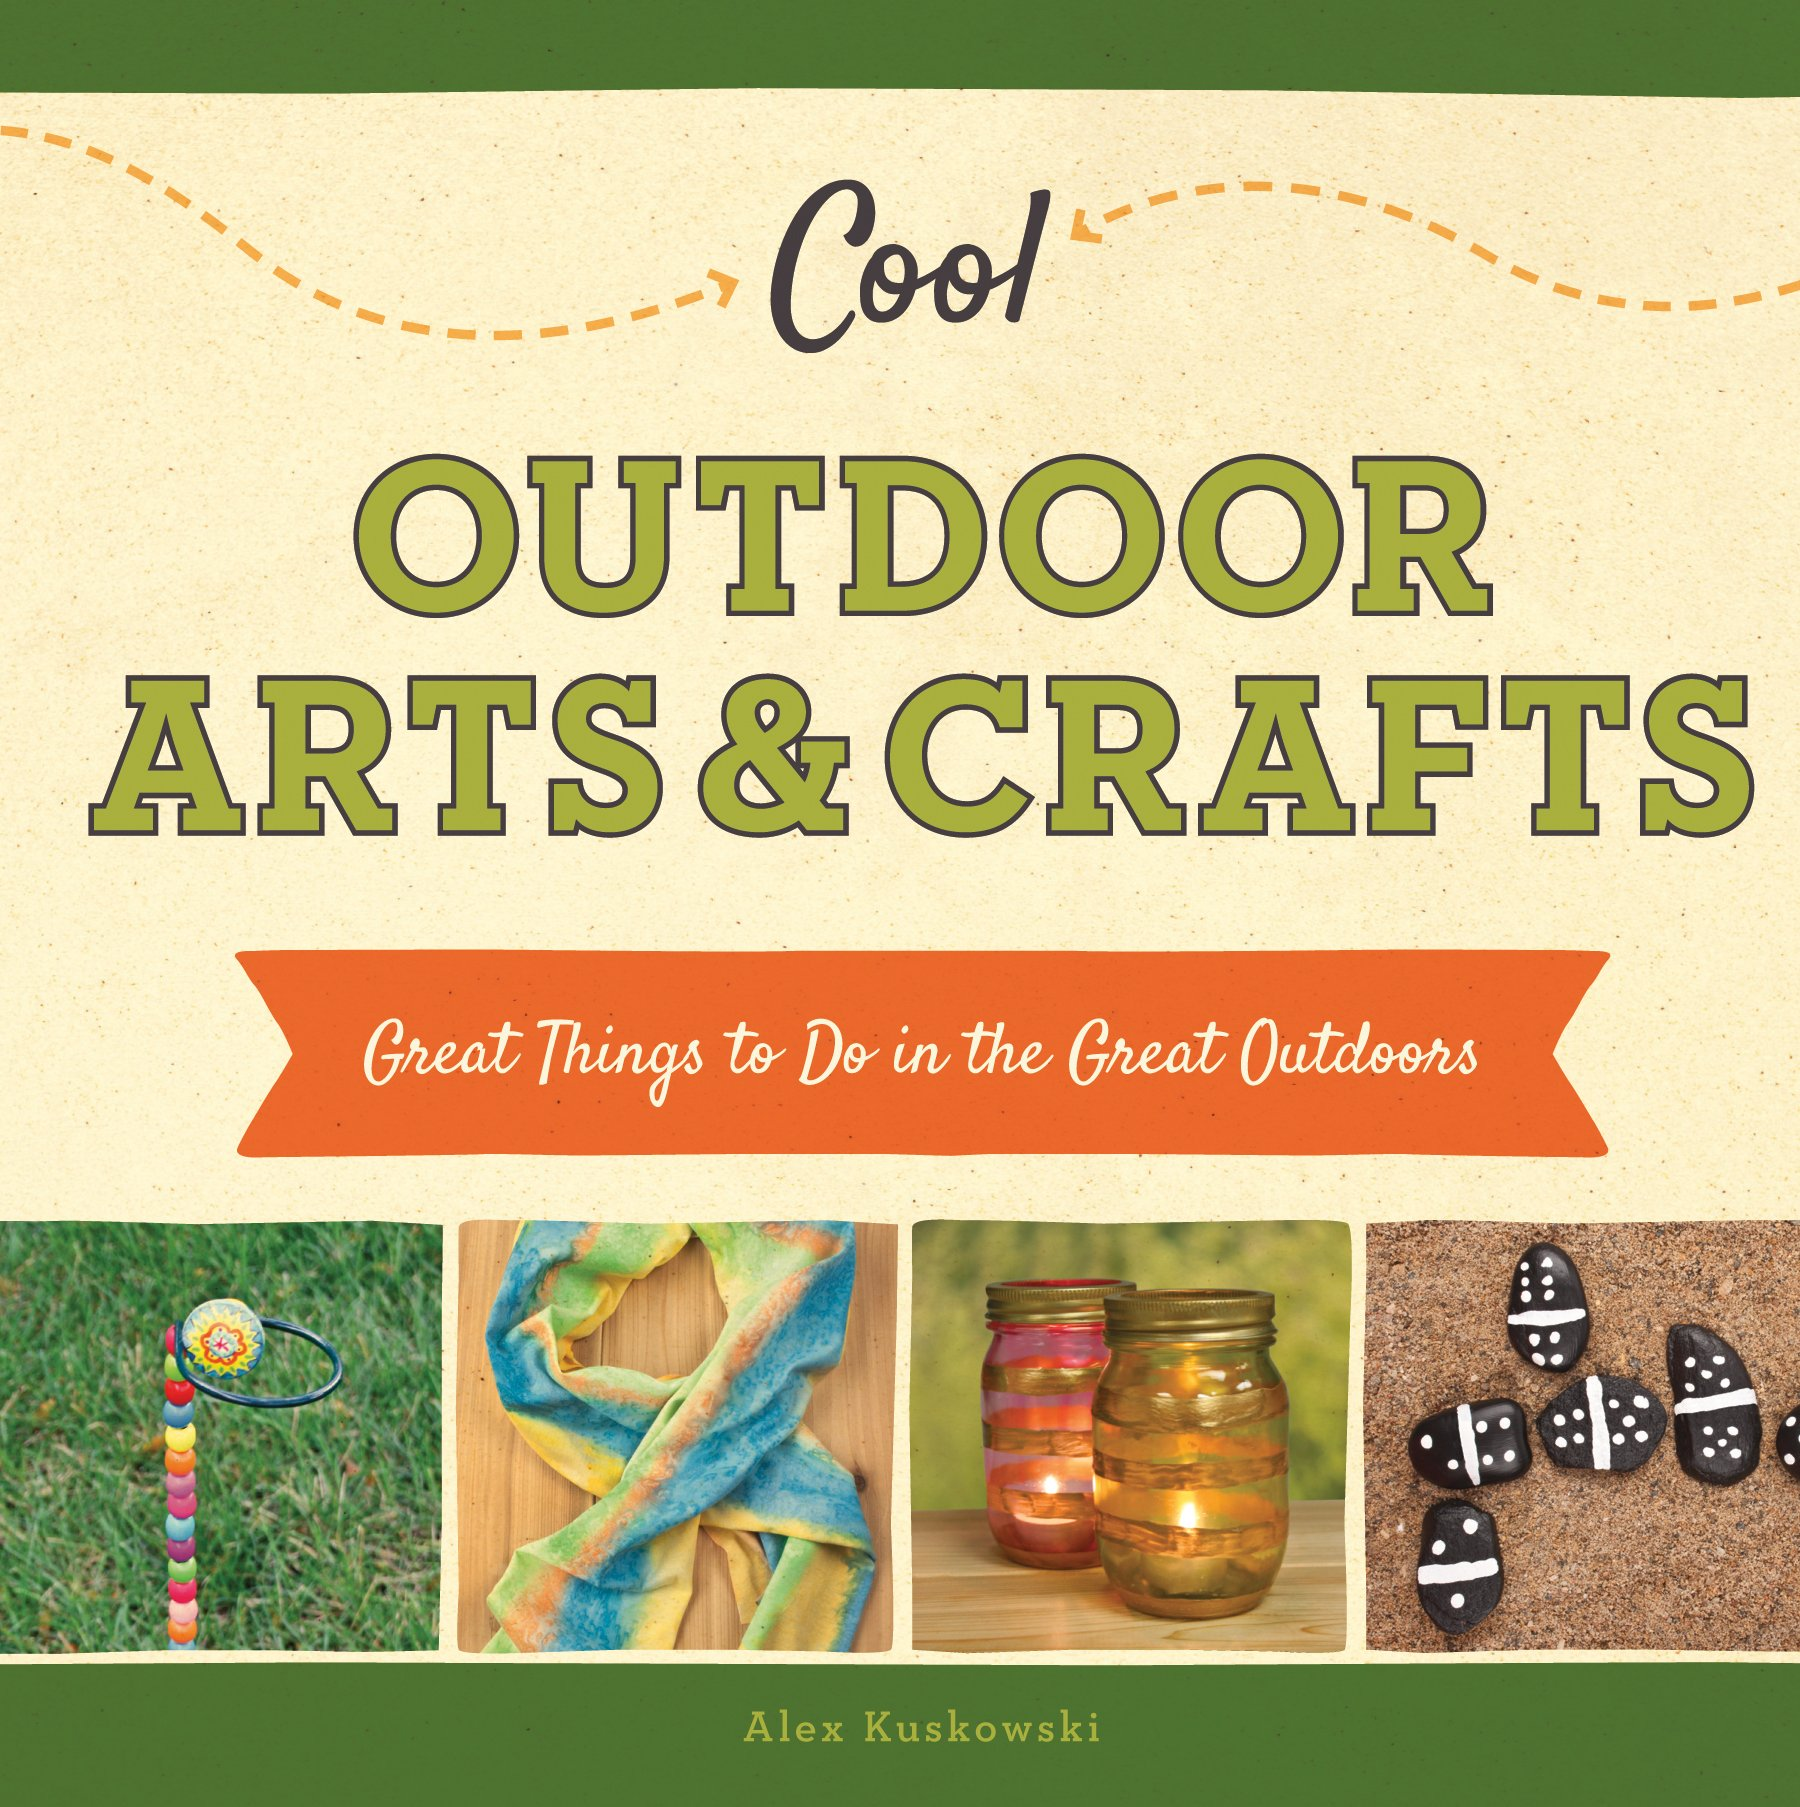 Cool Outdoor Arts Crafts Great Things To Do In The Great Outdoors